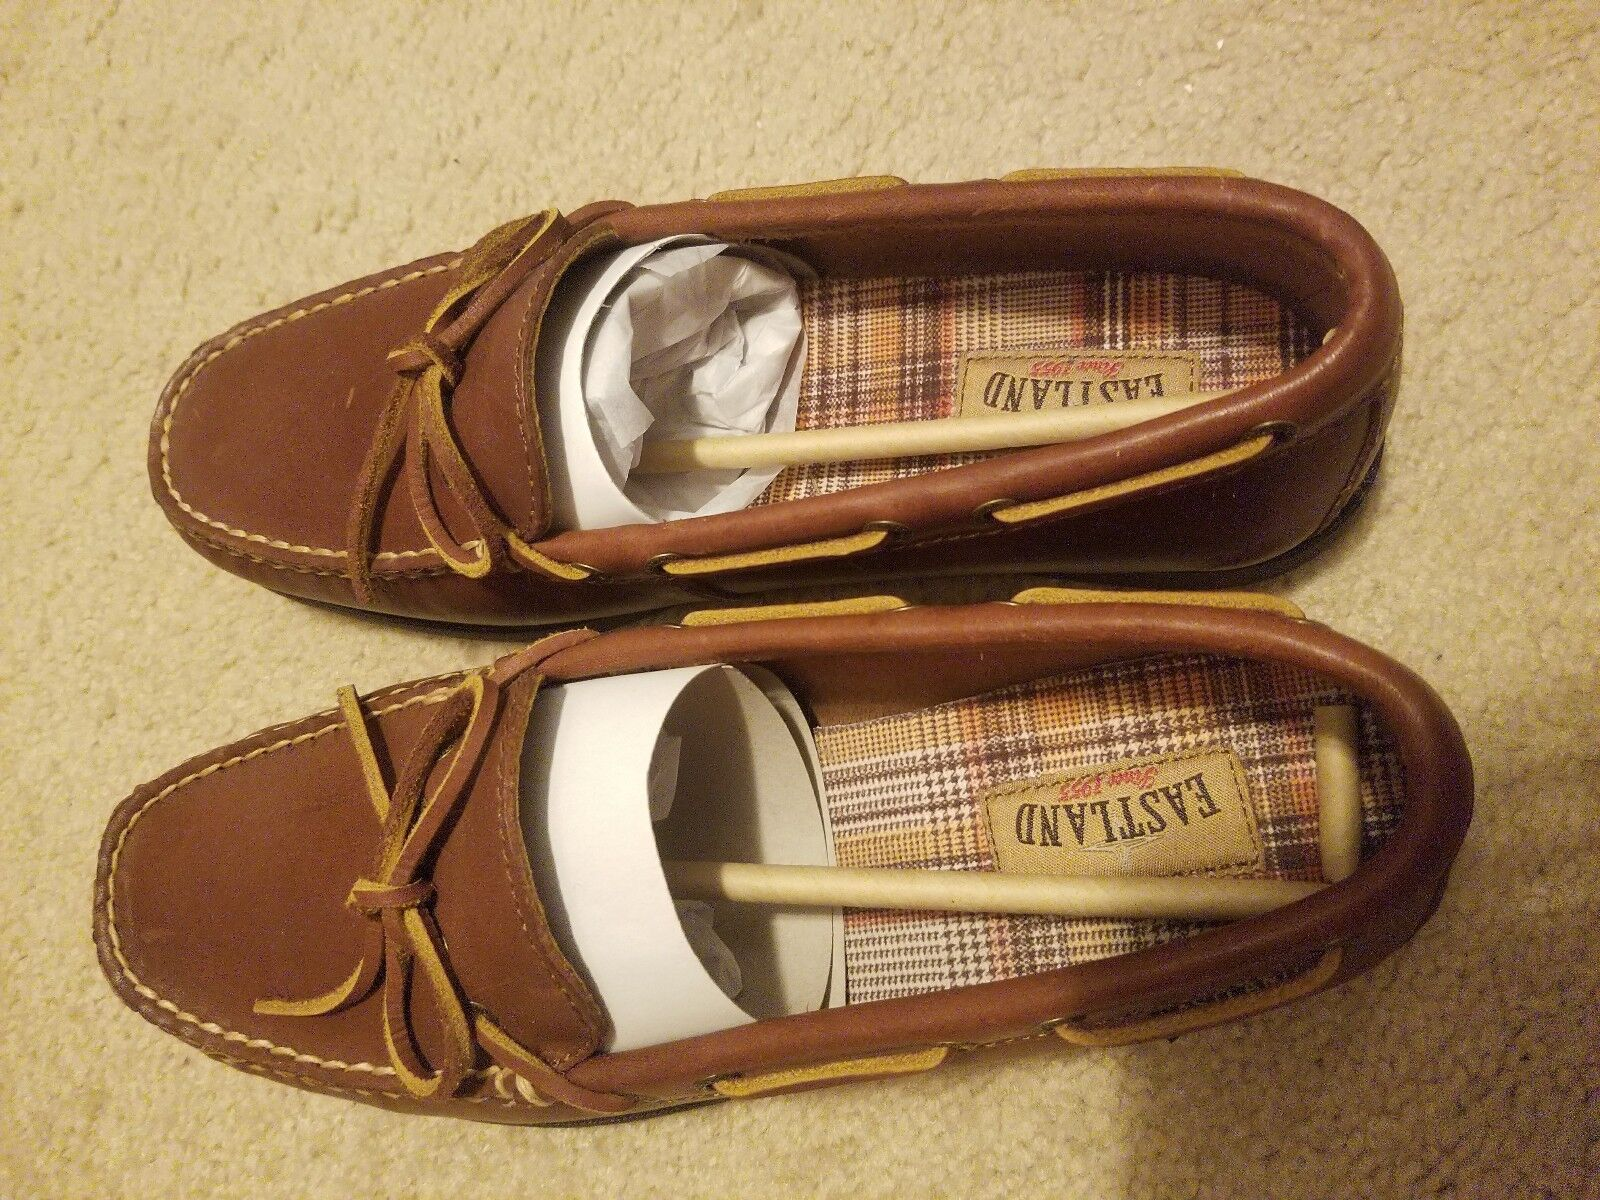 Women's Eastland Slip on shoes.  Yarmouth. New. NWB. Tan color